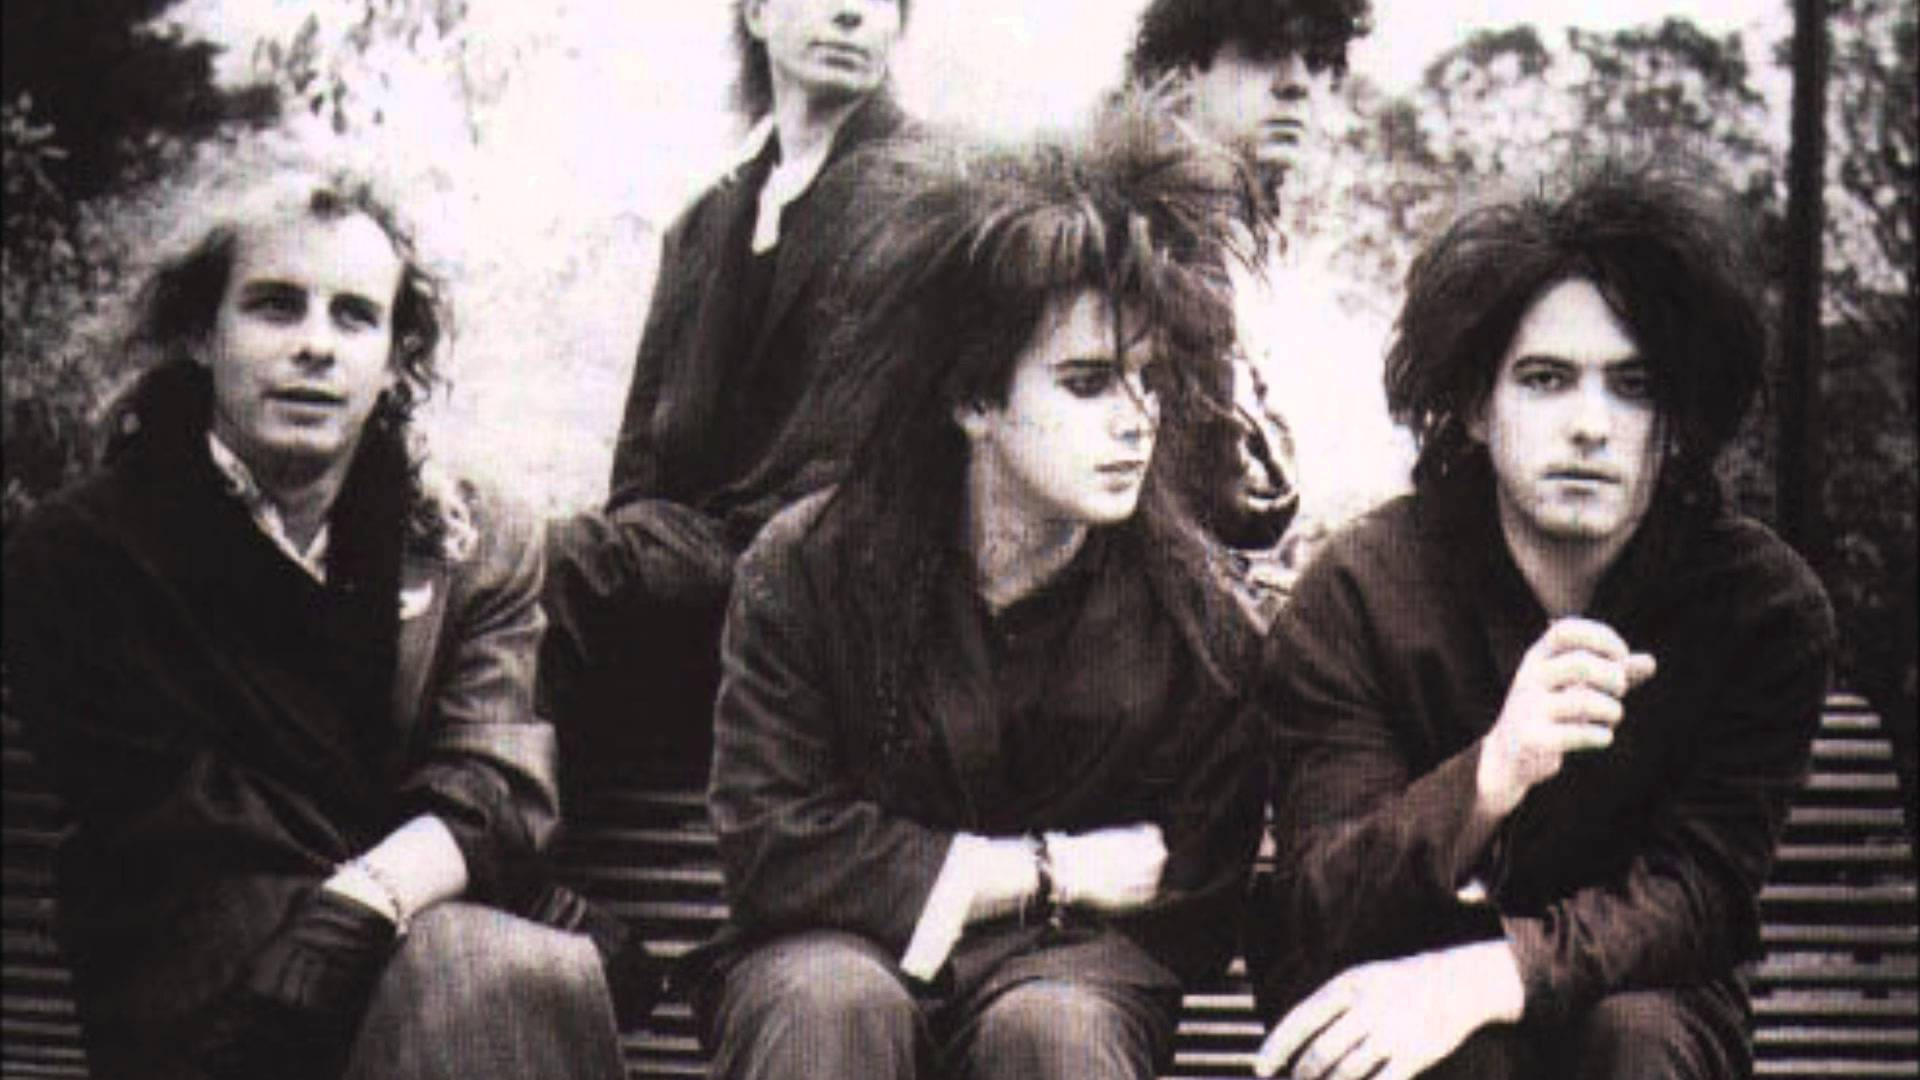 The Evolution of The Cure: From Goth to Pop and Back Again